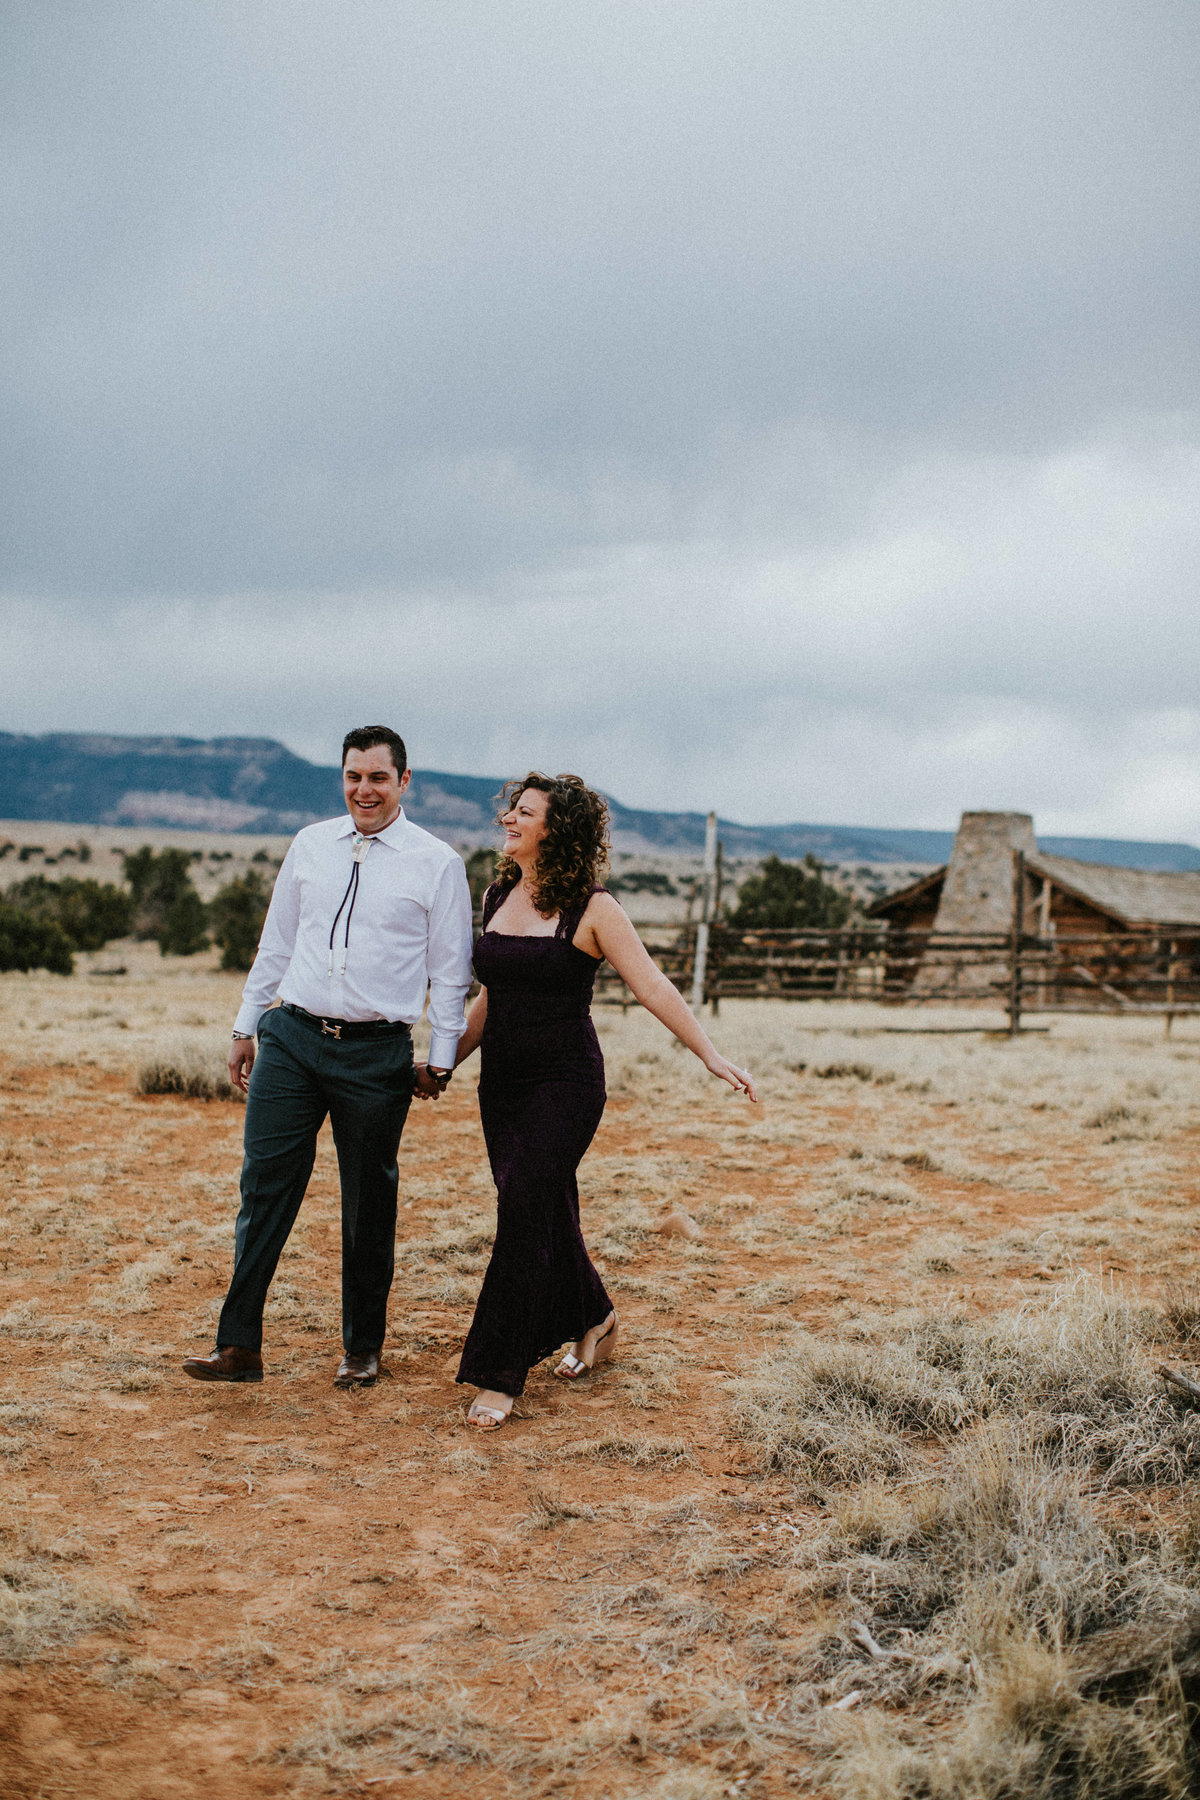 new-mexico-destination-engagement-wedding-photography-videography-adventure-403